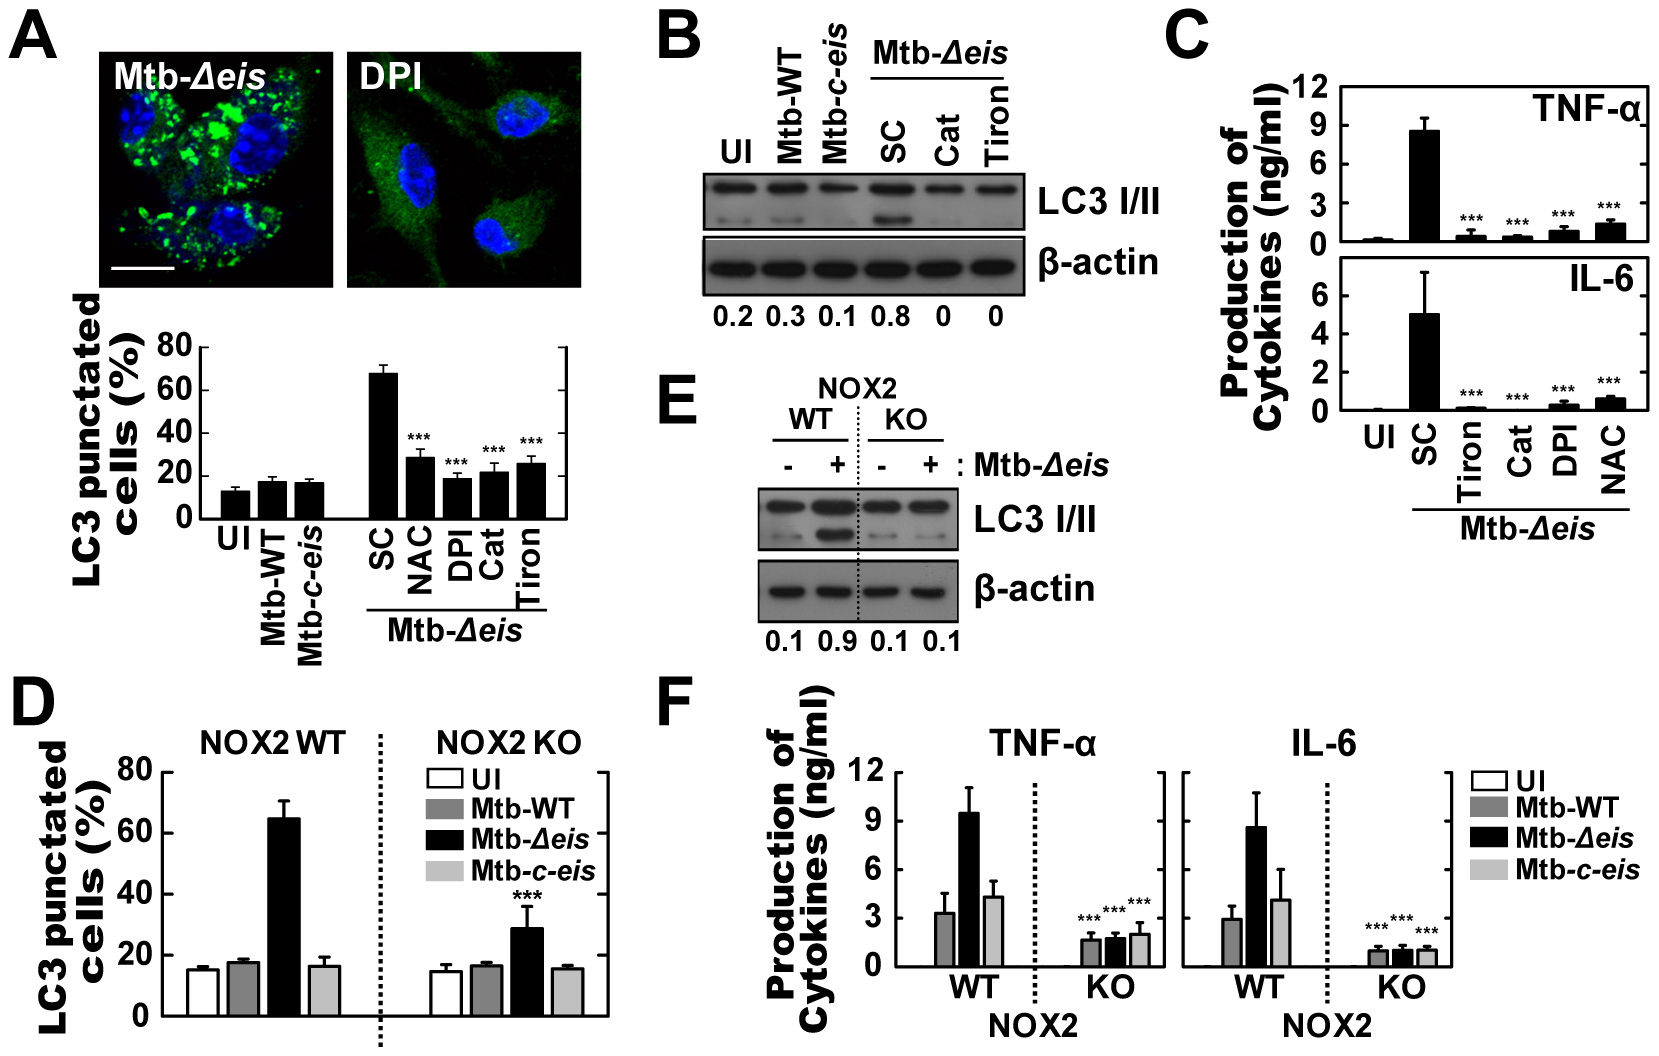 Increased ROS generation plays a critical role in autophagy and proinflammatory cytokine production in Mtb-<i>Δeis</i>-infected macrophages.